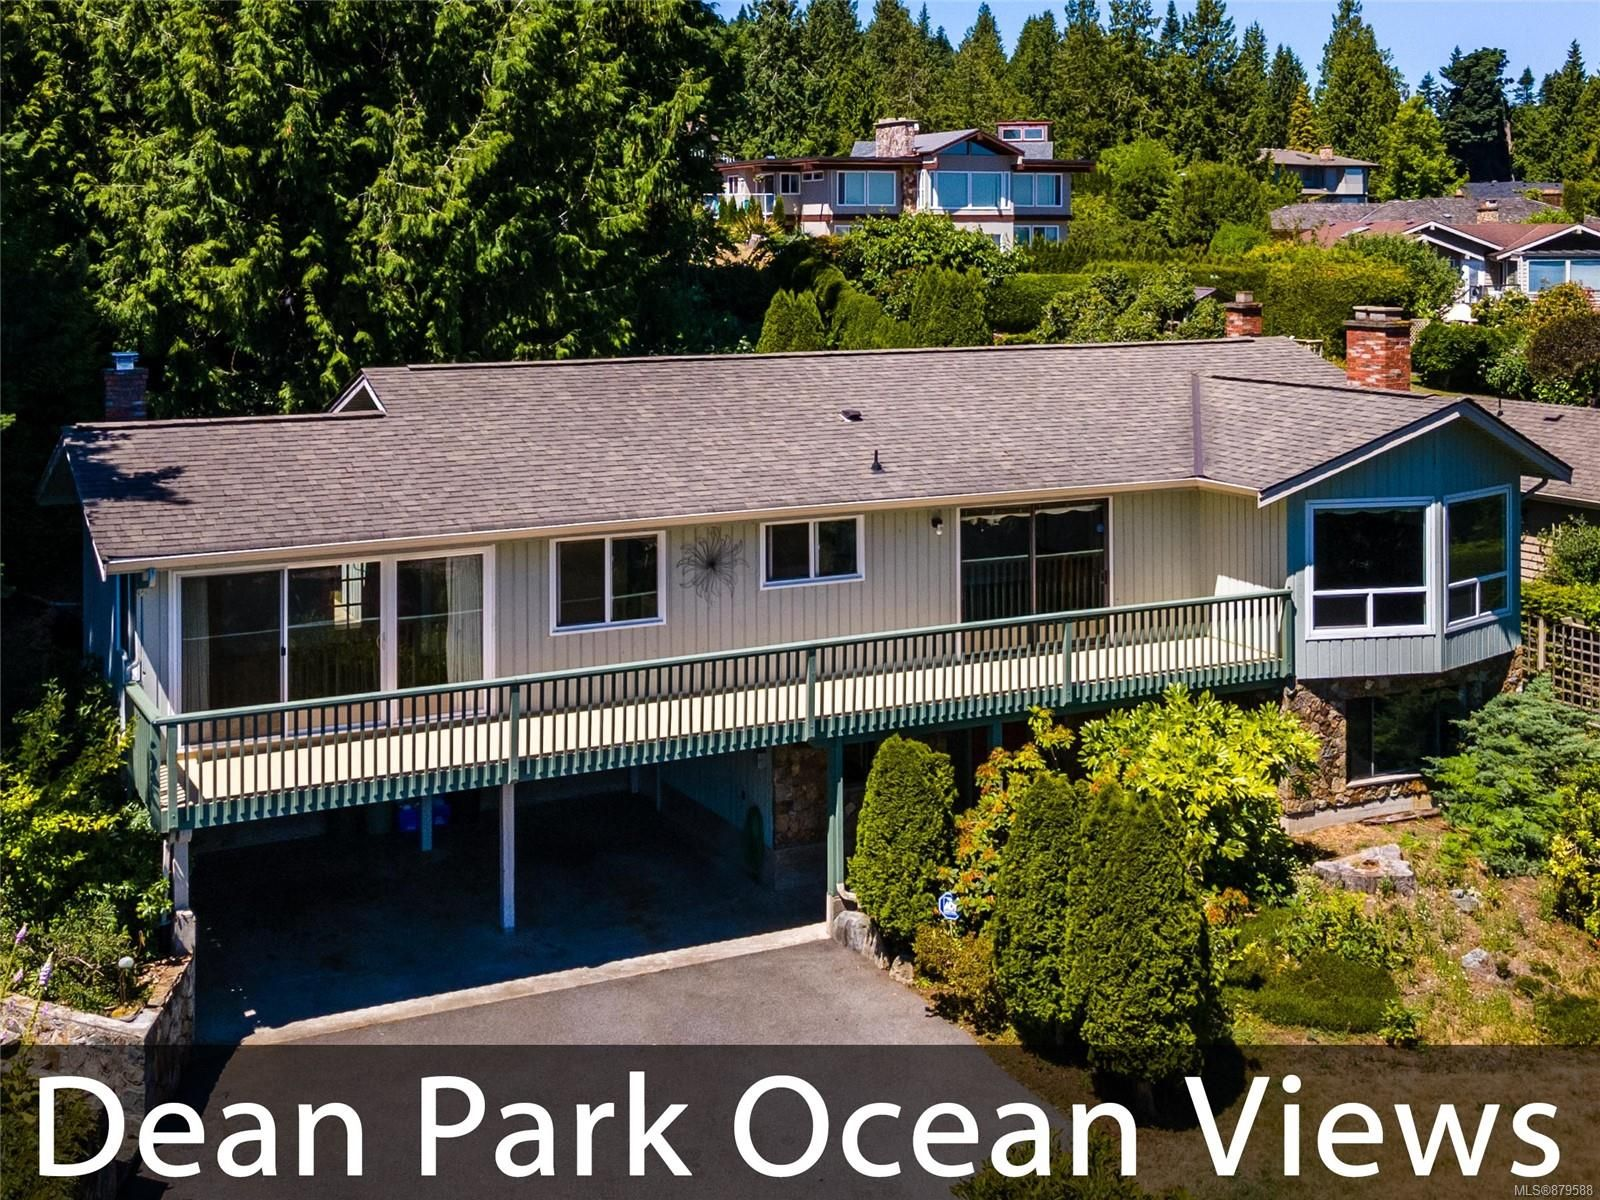 Main Photo: 8890 Haro Park Terr in : NS Dean Park House for sale (North Saanich)  : MLS®# 879588